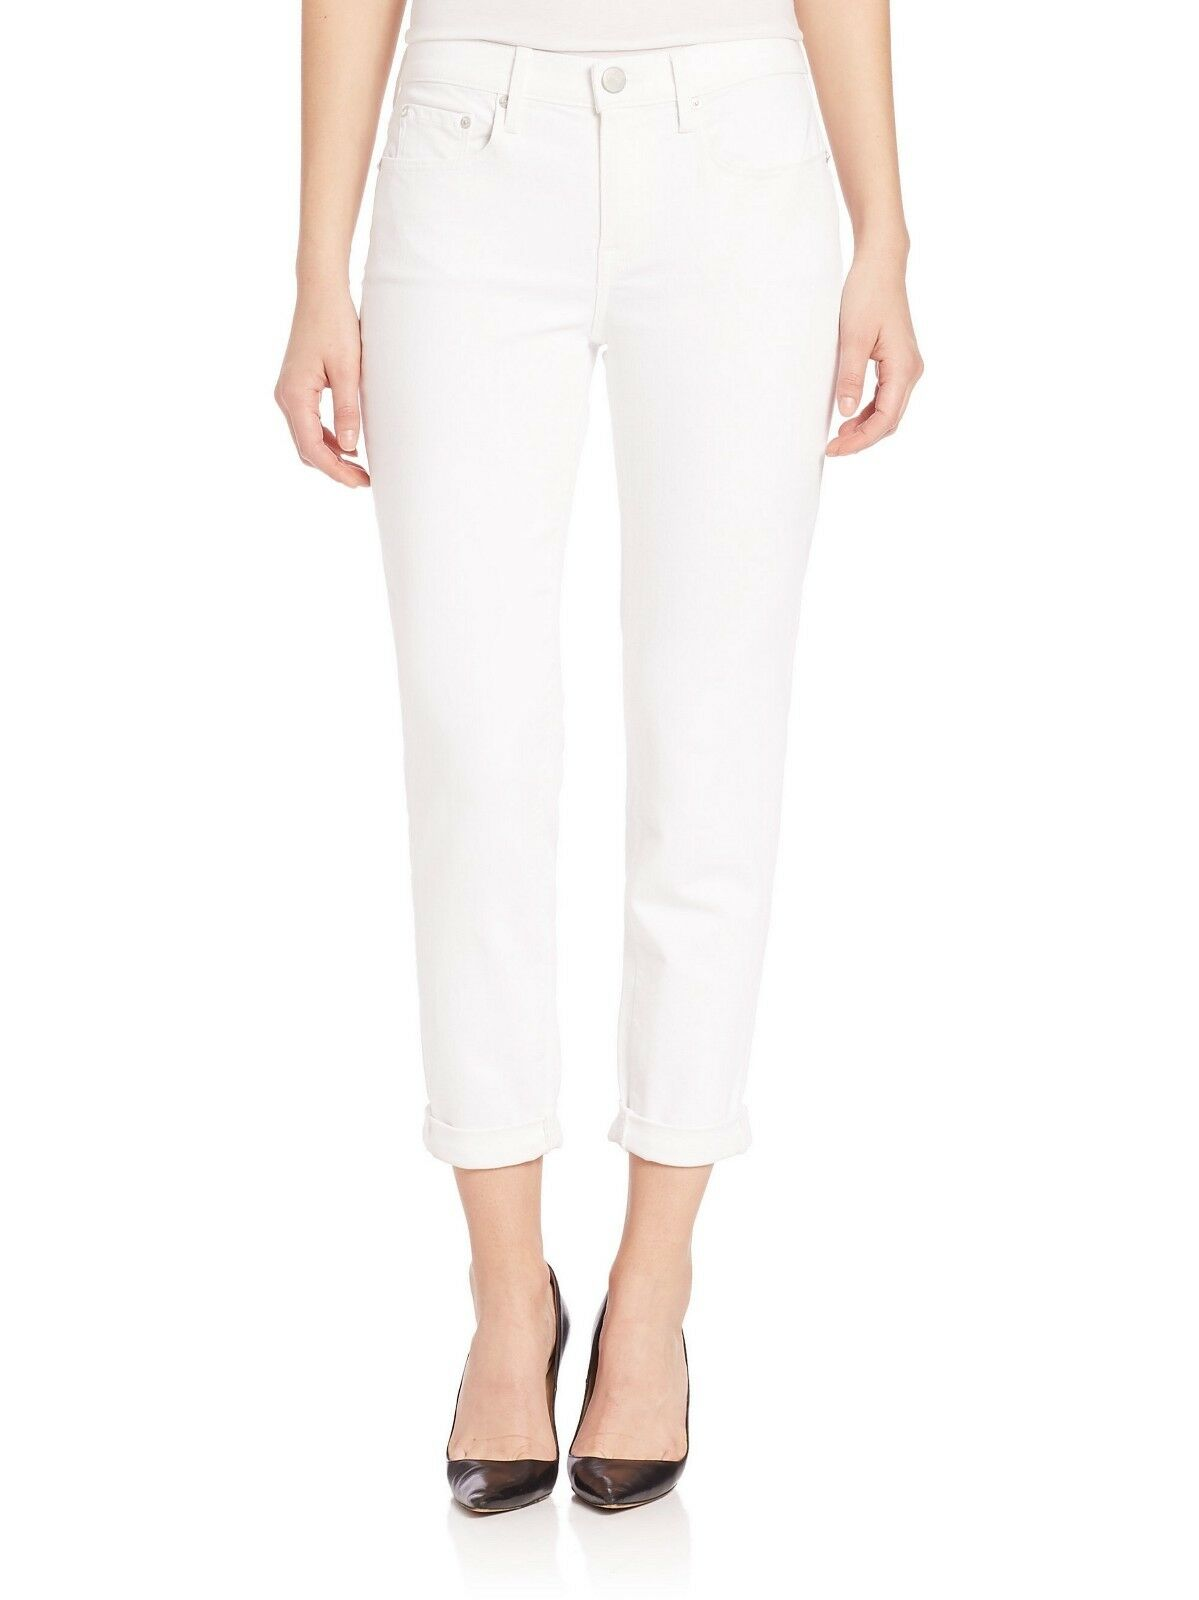 NWT Vince Mason Relaxed Rolled Cuff Jean, White, sz 28,  220